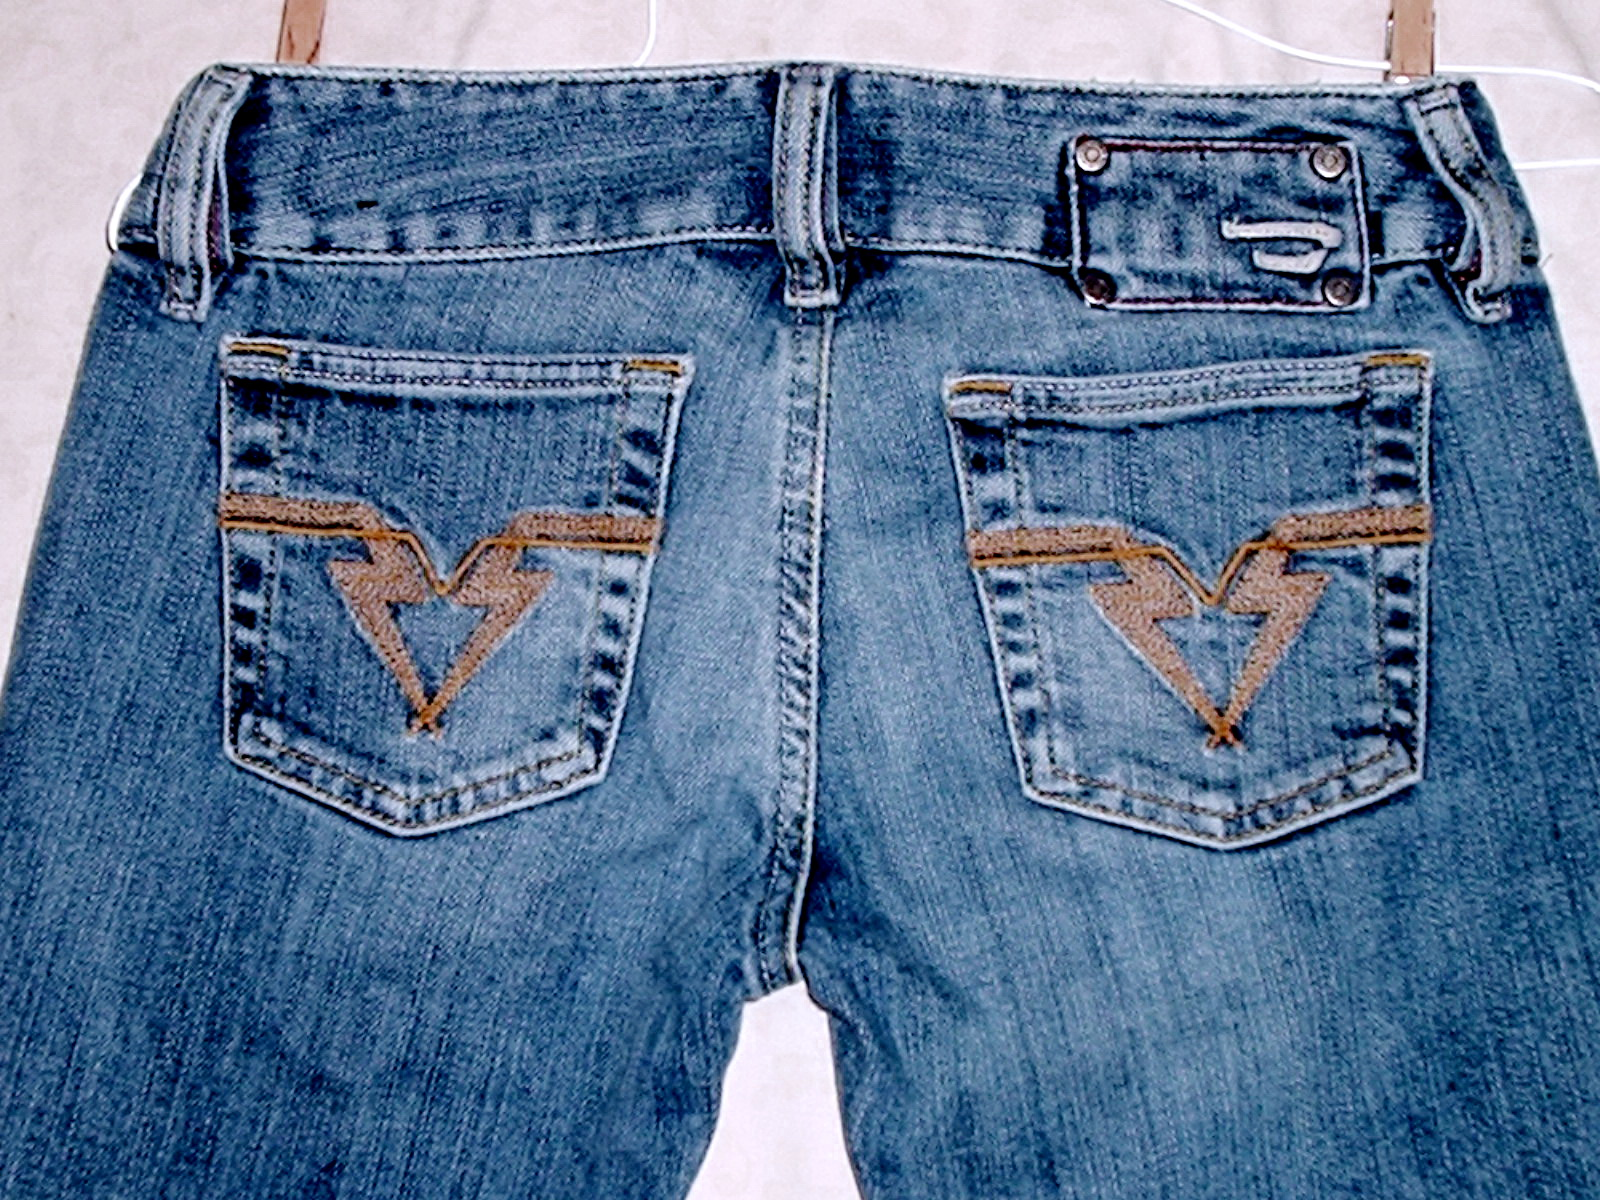 size 26 | urban street used jeans